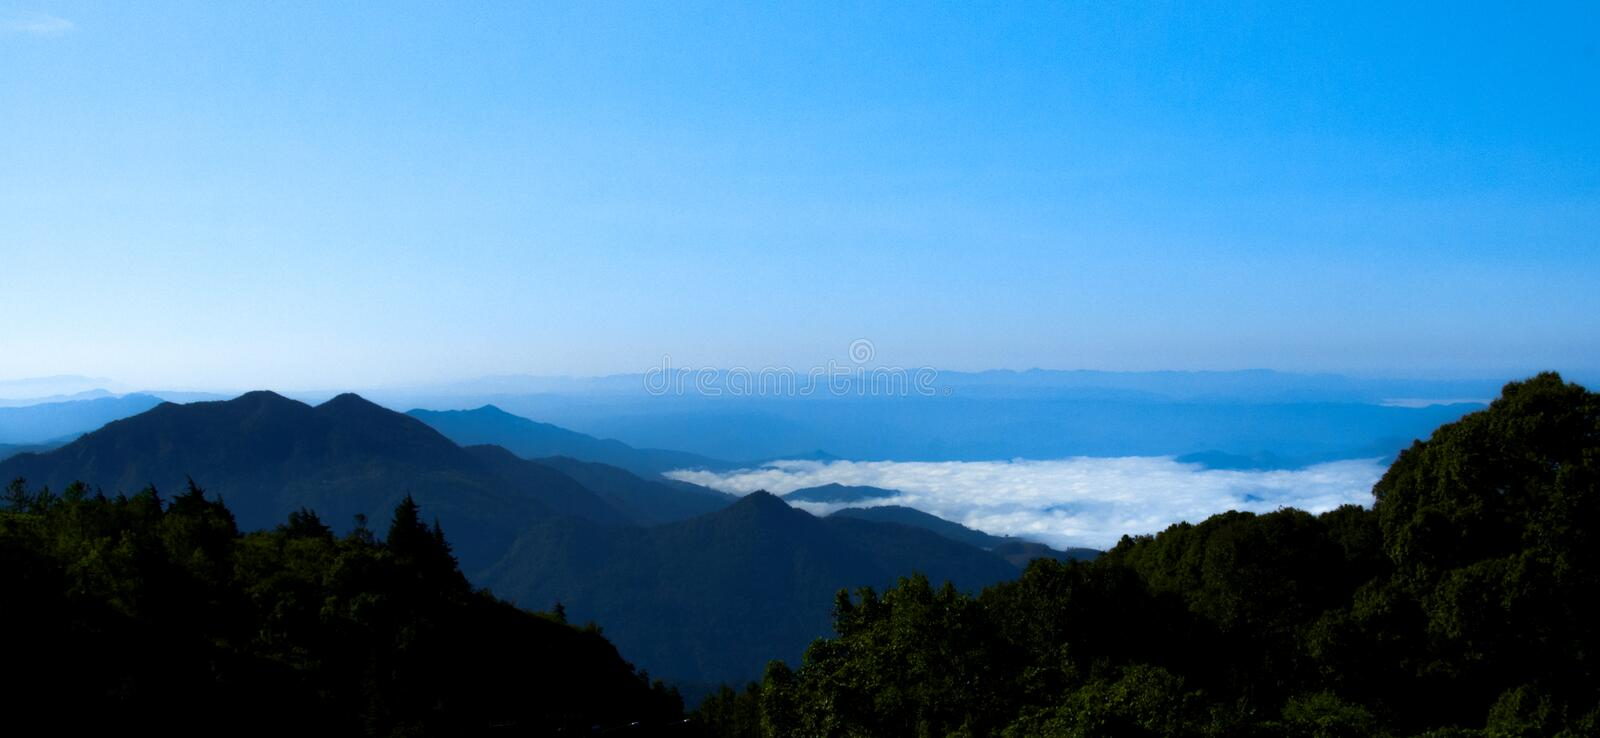 Blue Ridge Parkway Appalachian Mountains Scenic Nature Landscape royalty free stock images